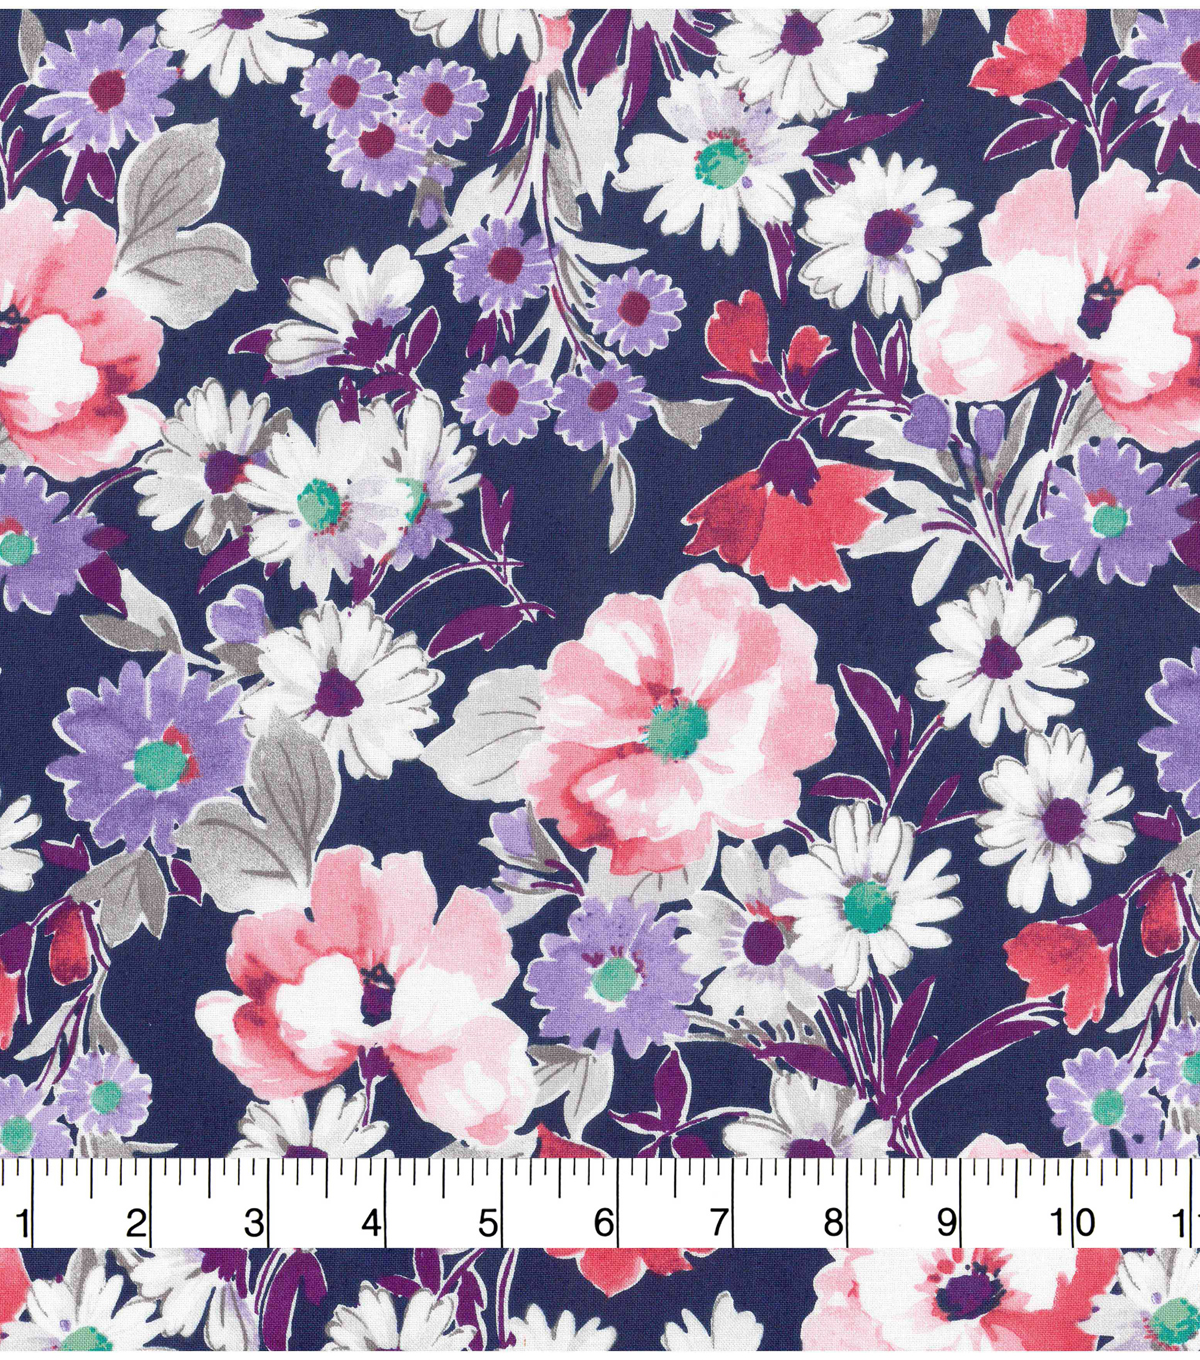 Pink Floral Fabric by the Yard. Watercolor Florals Girl